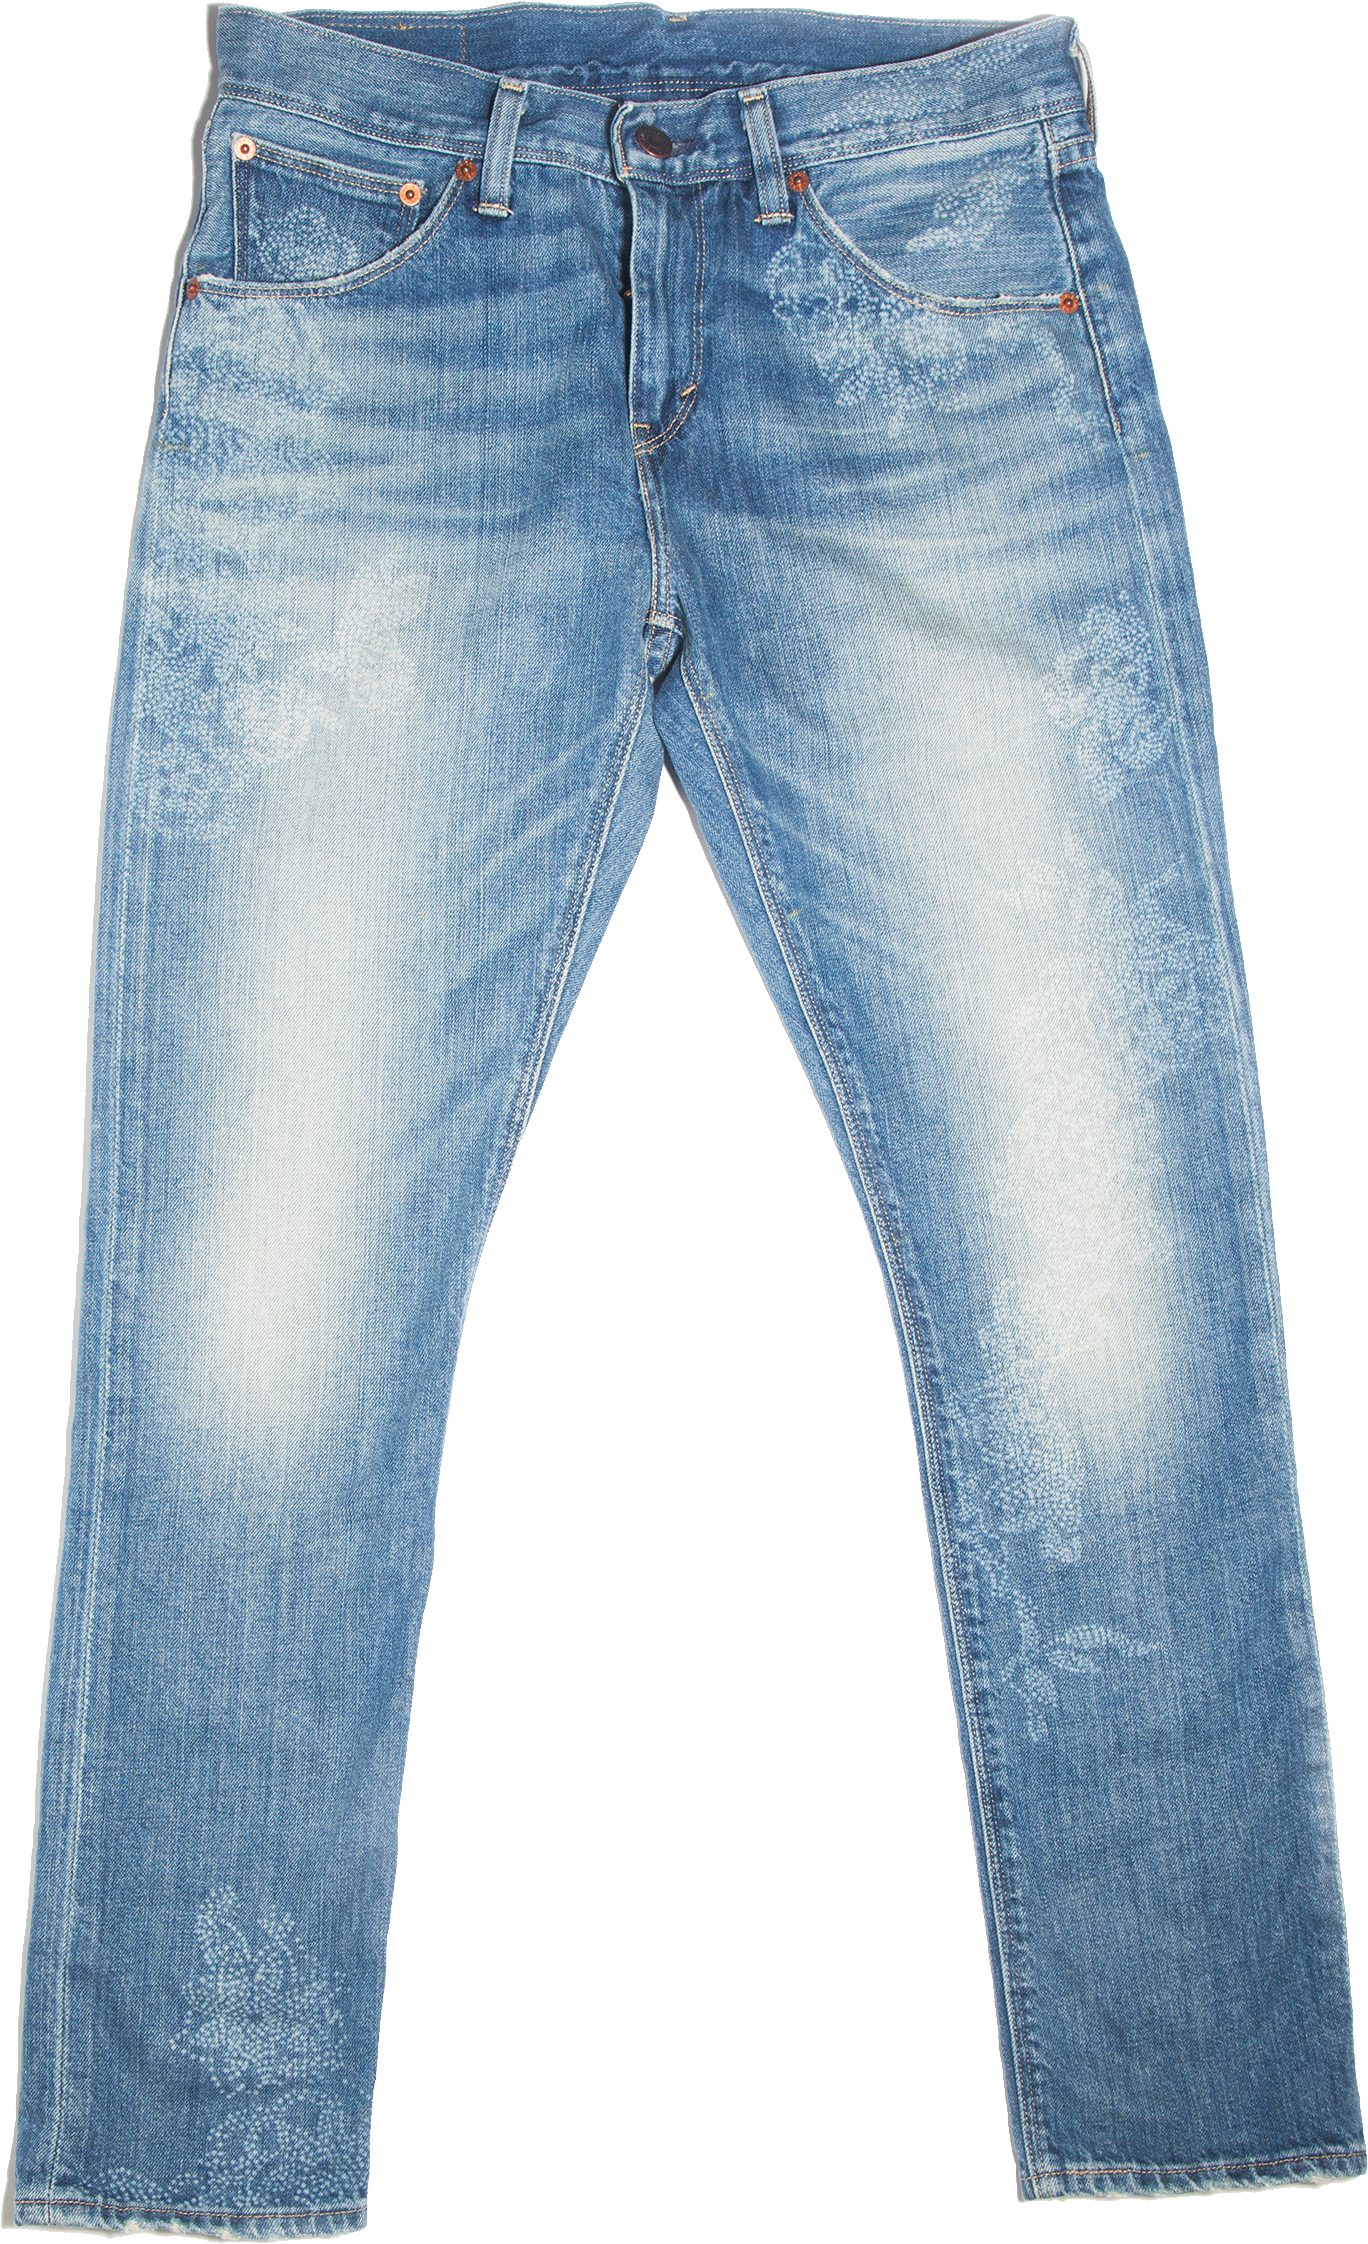 clipart jeans.